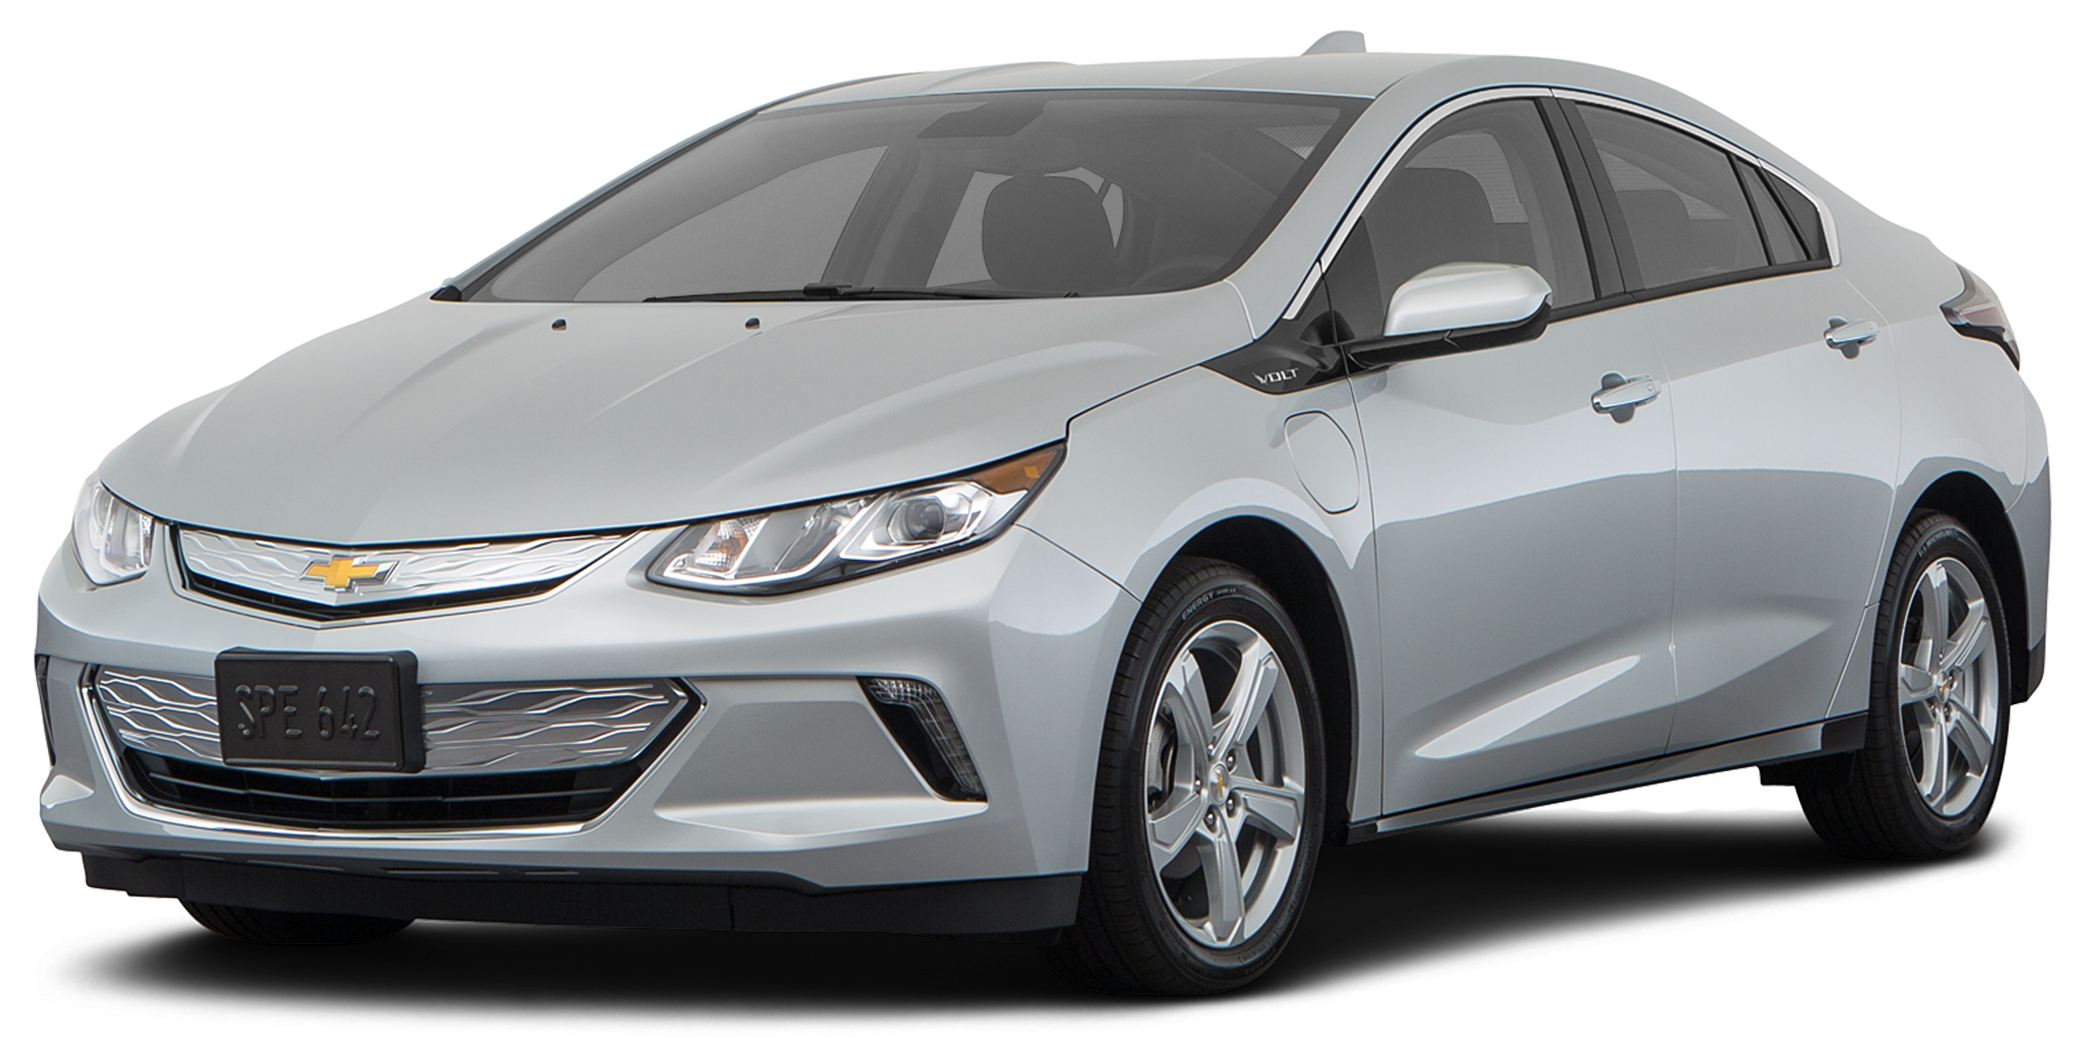 2019 Chevrolet Volt For Sale in Peoria IL | Green Chevrolet